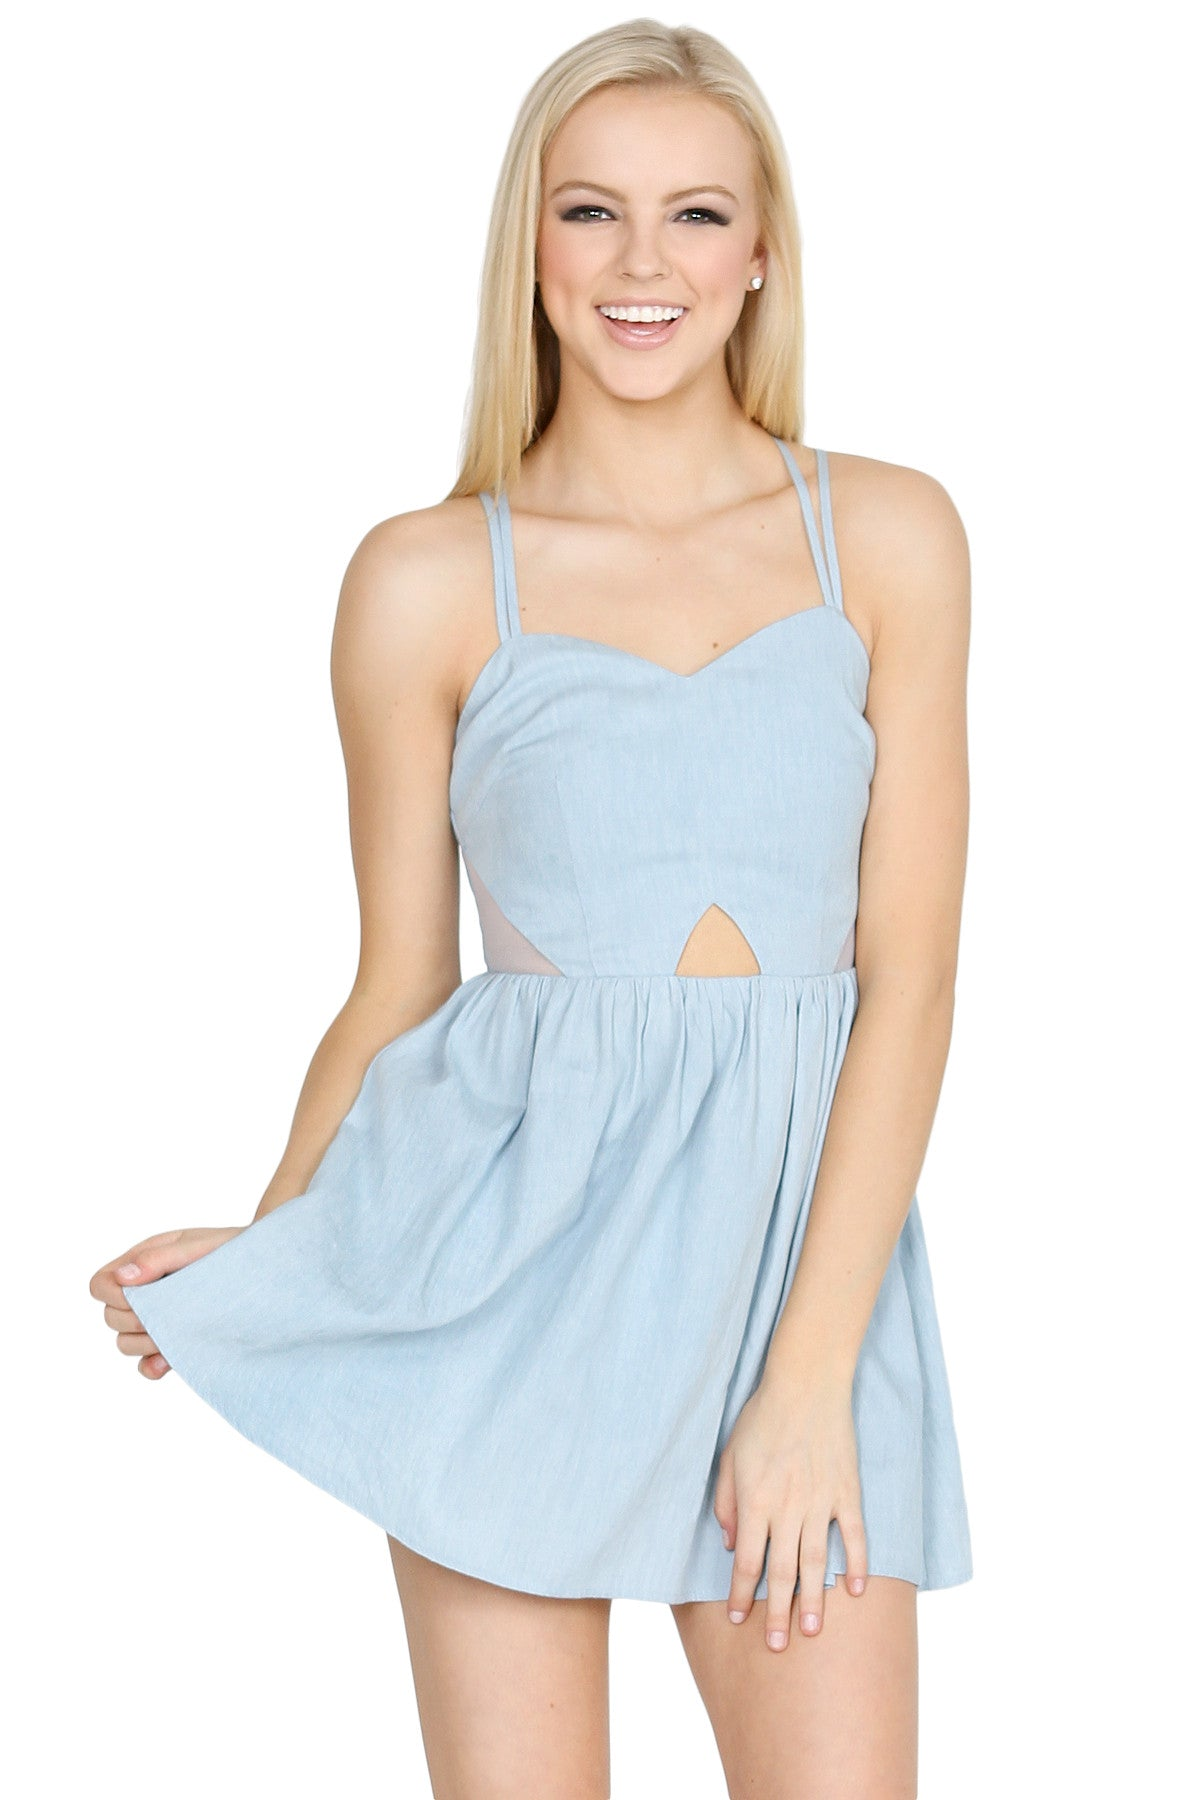 ADALYN DRESS - HARPER KELLEY  - 1